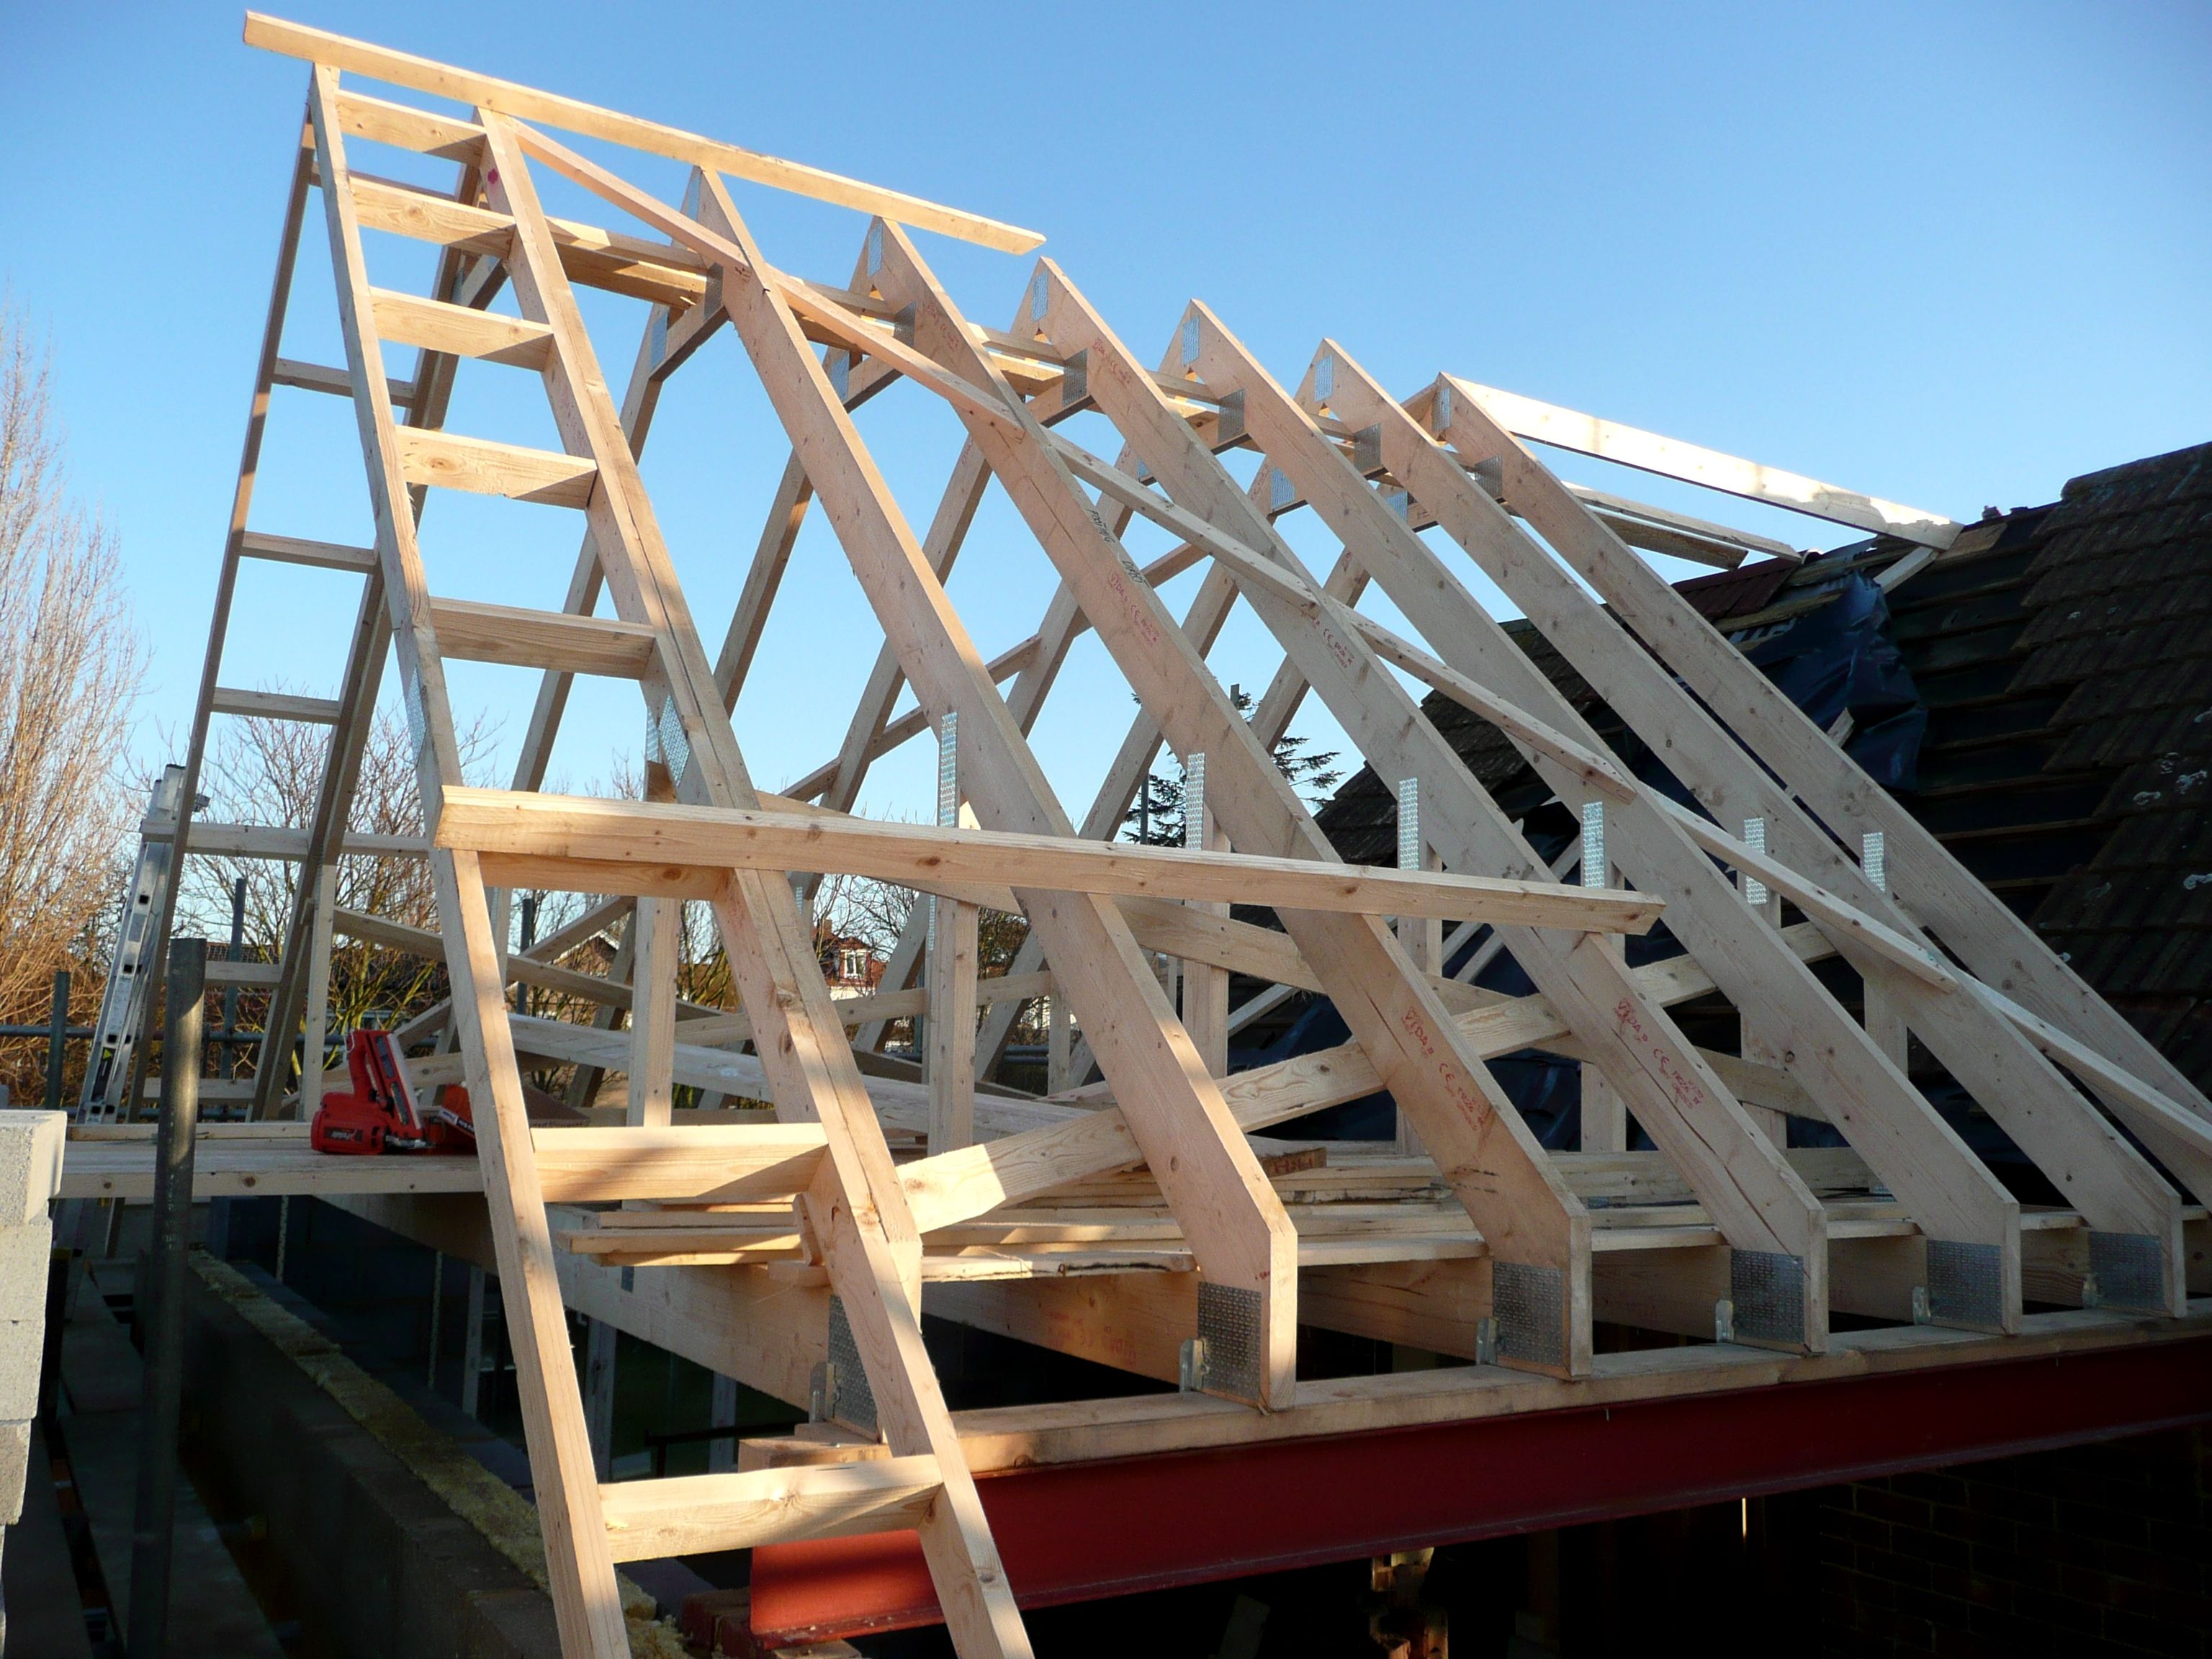 Mersea Essex 1st Fix A Truss Roof With Gable Ladder In